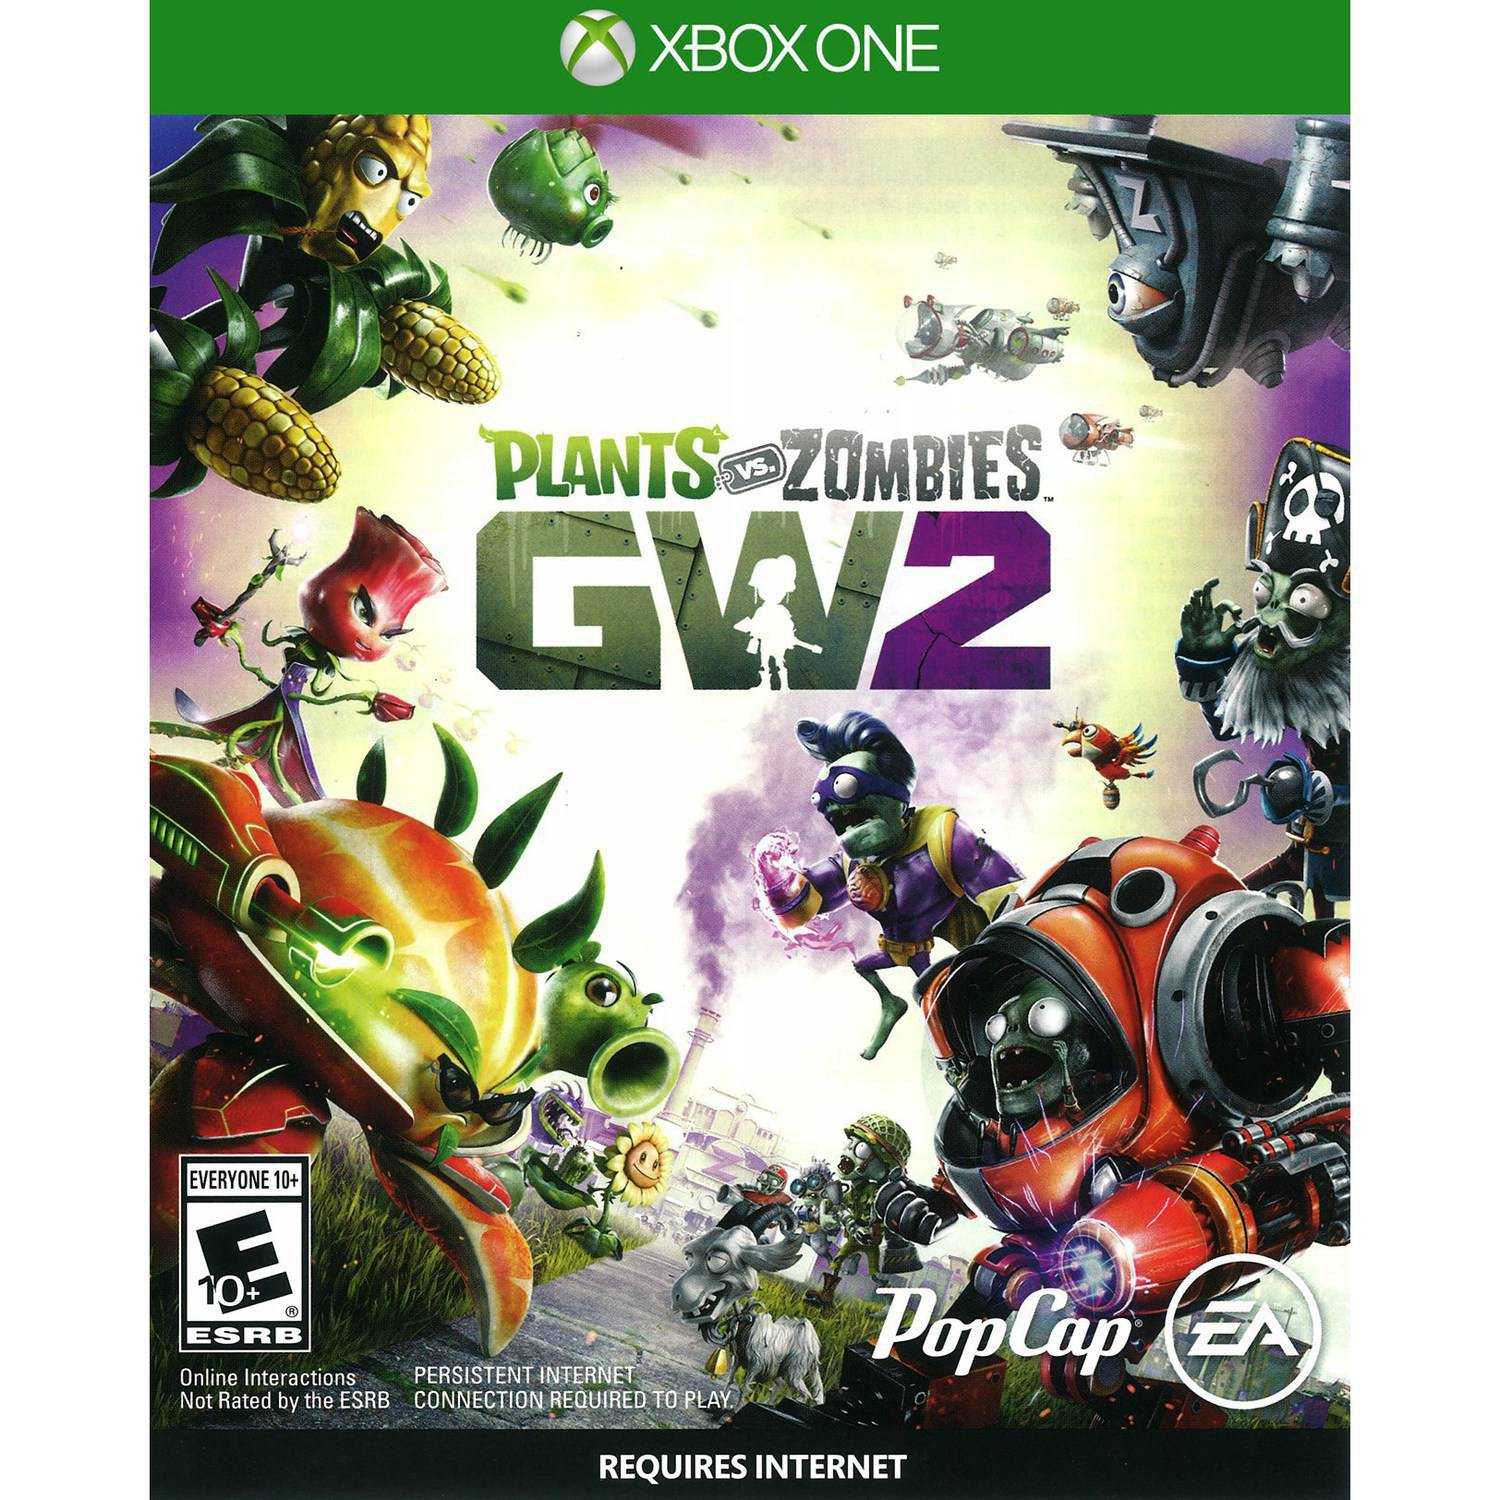 Plants vs Zombies Garden Warfare 2 (Xbox One) by POPCAP GAMES